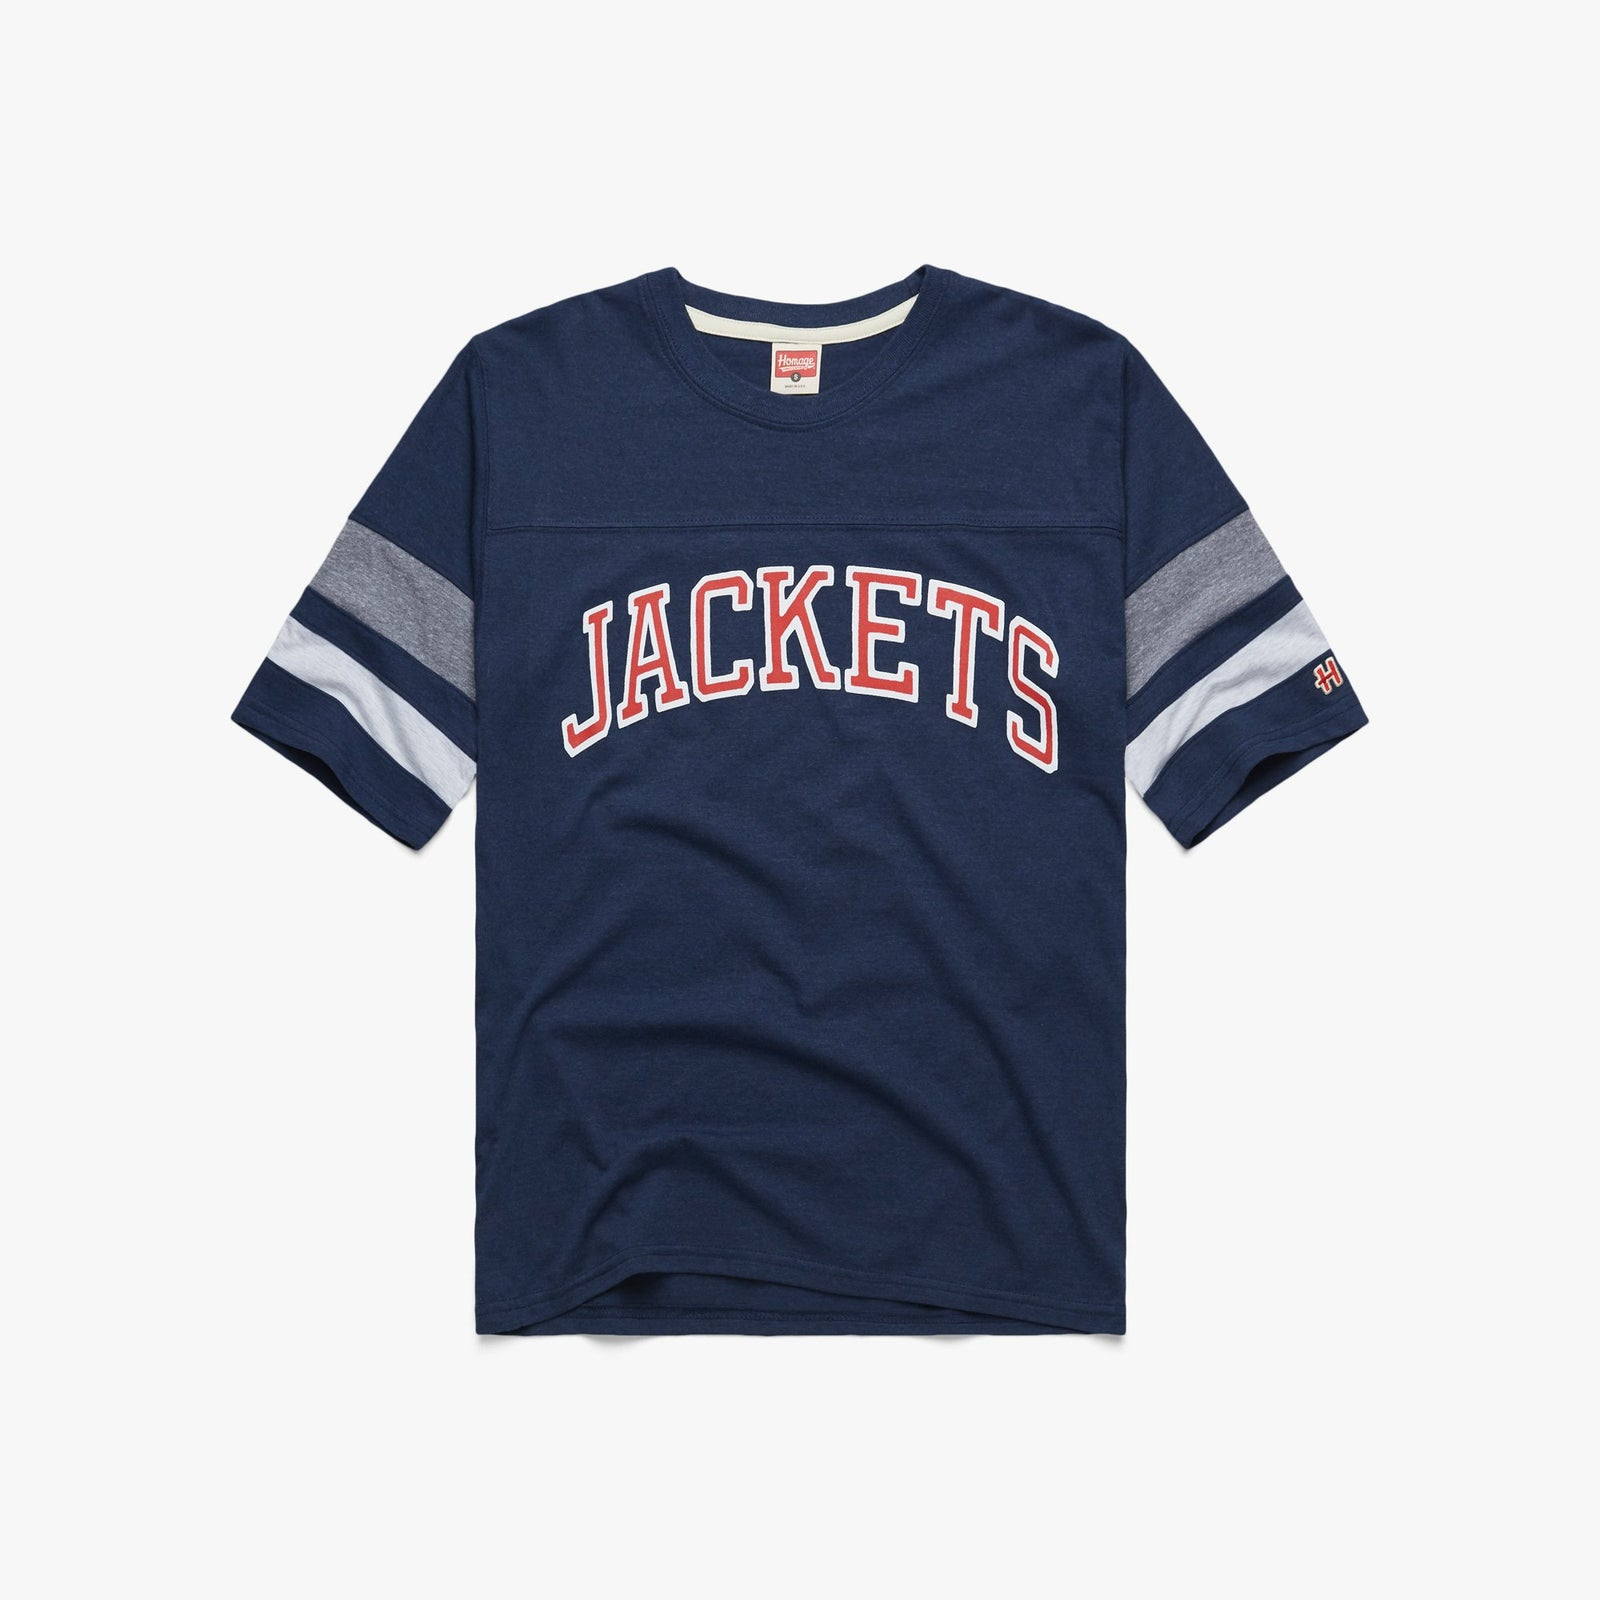 Jackets Arch Power Play Tee